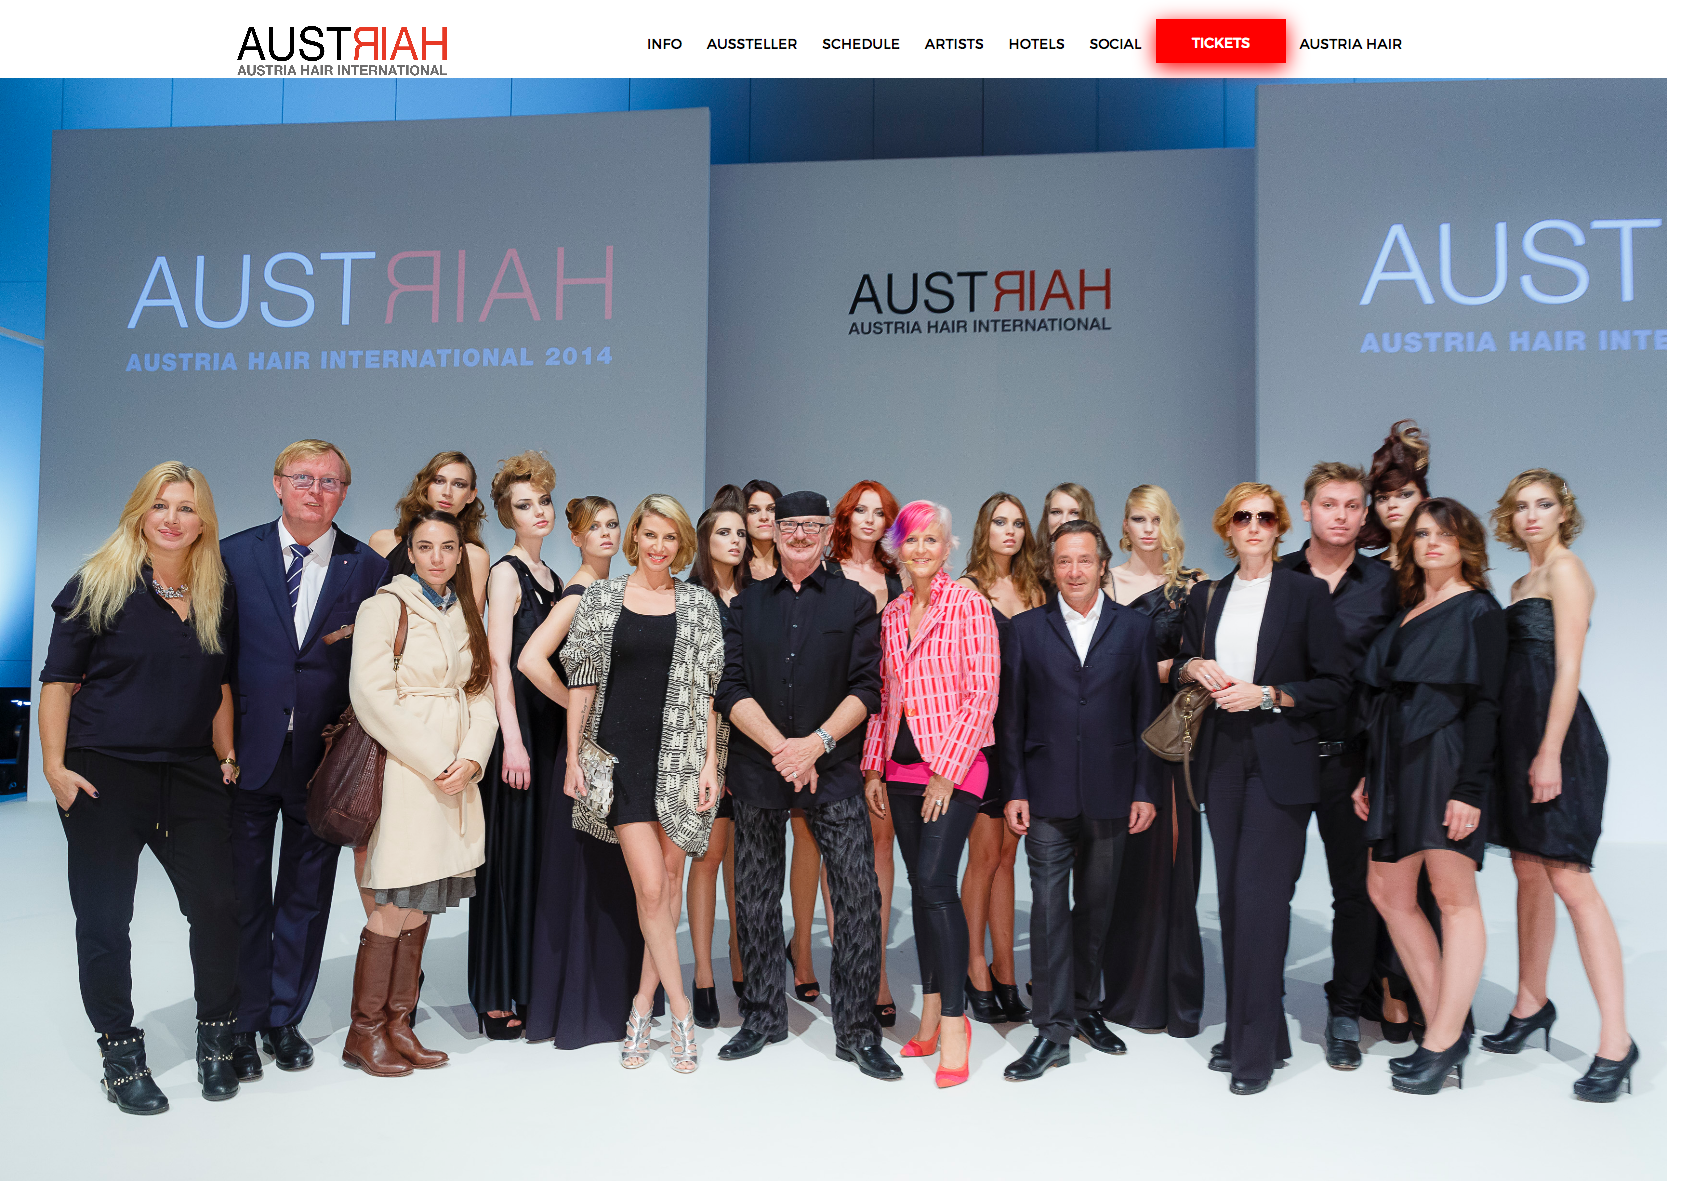 Austria Hair International